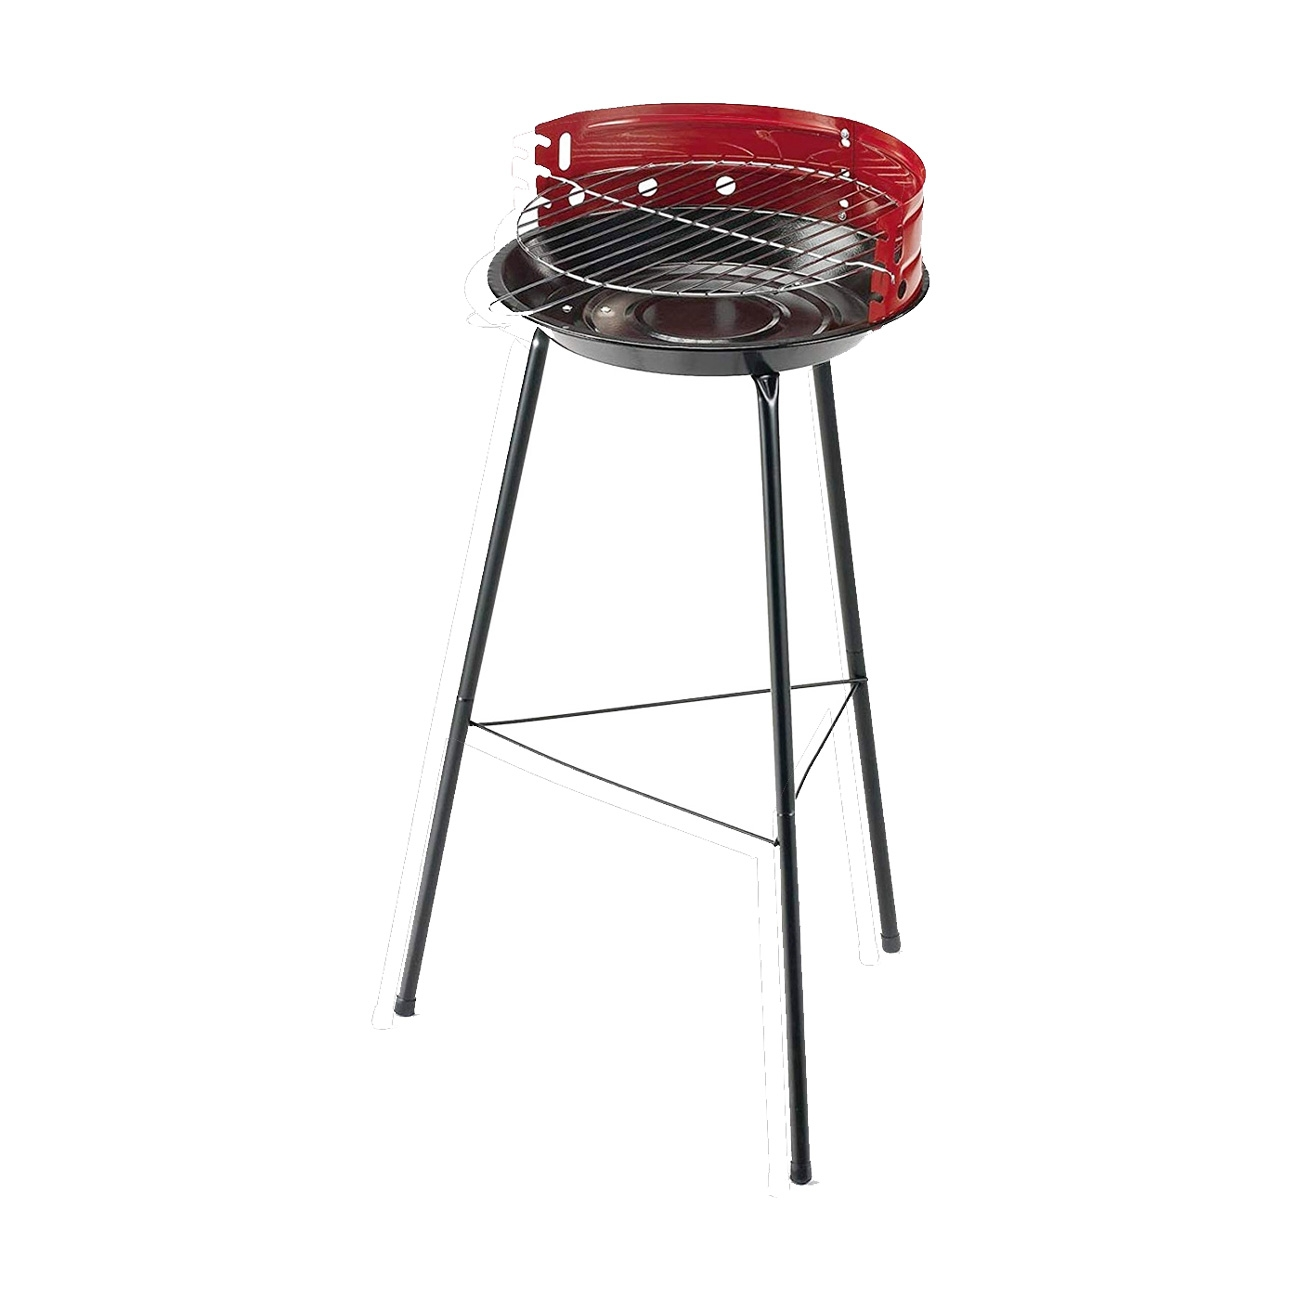 Image of Barbecue a carbonella Ompagrill Sirio 4075